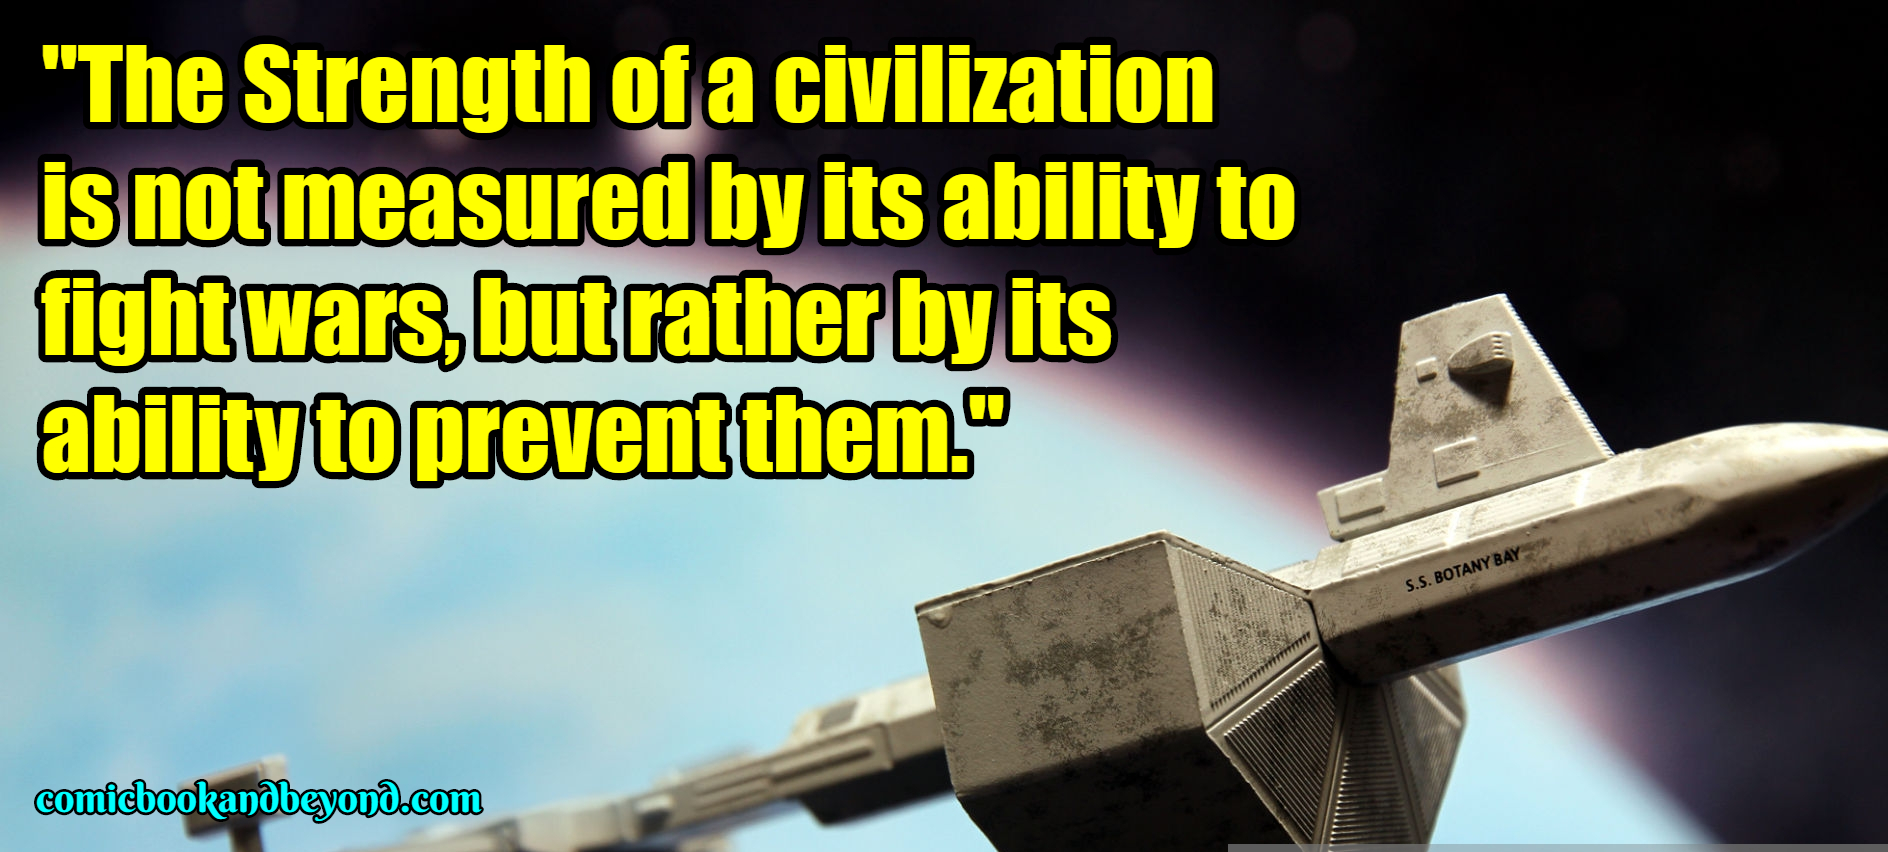 Gene Roddenberry famous Quotes (2)